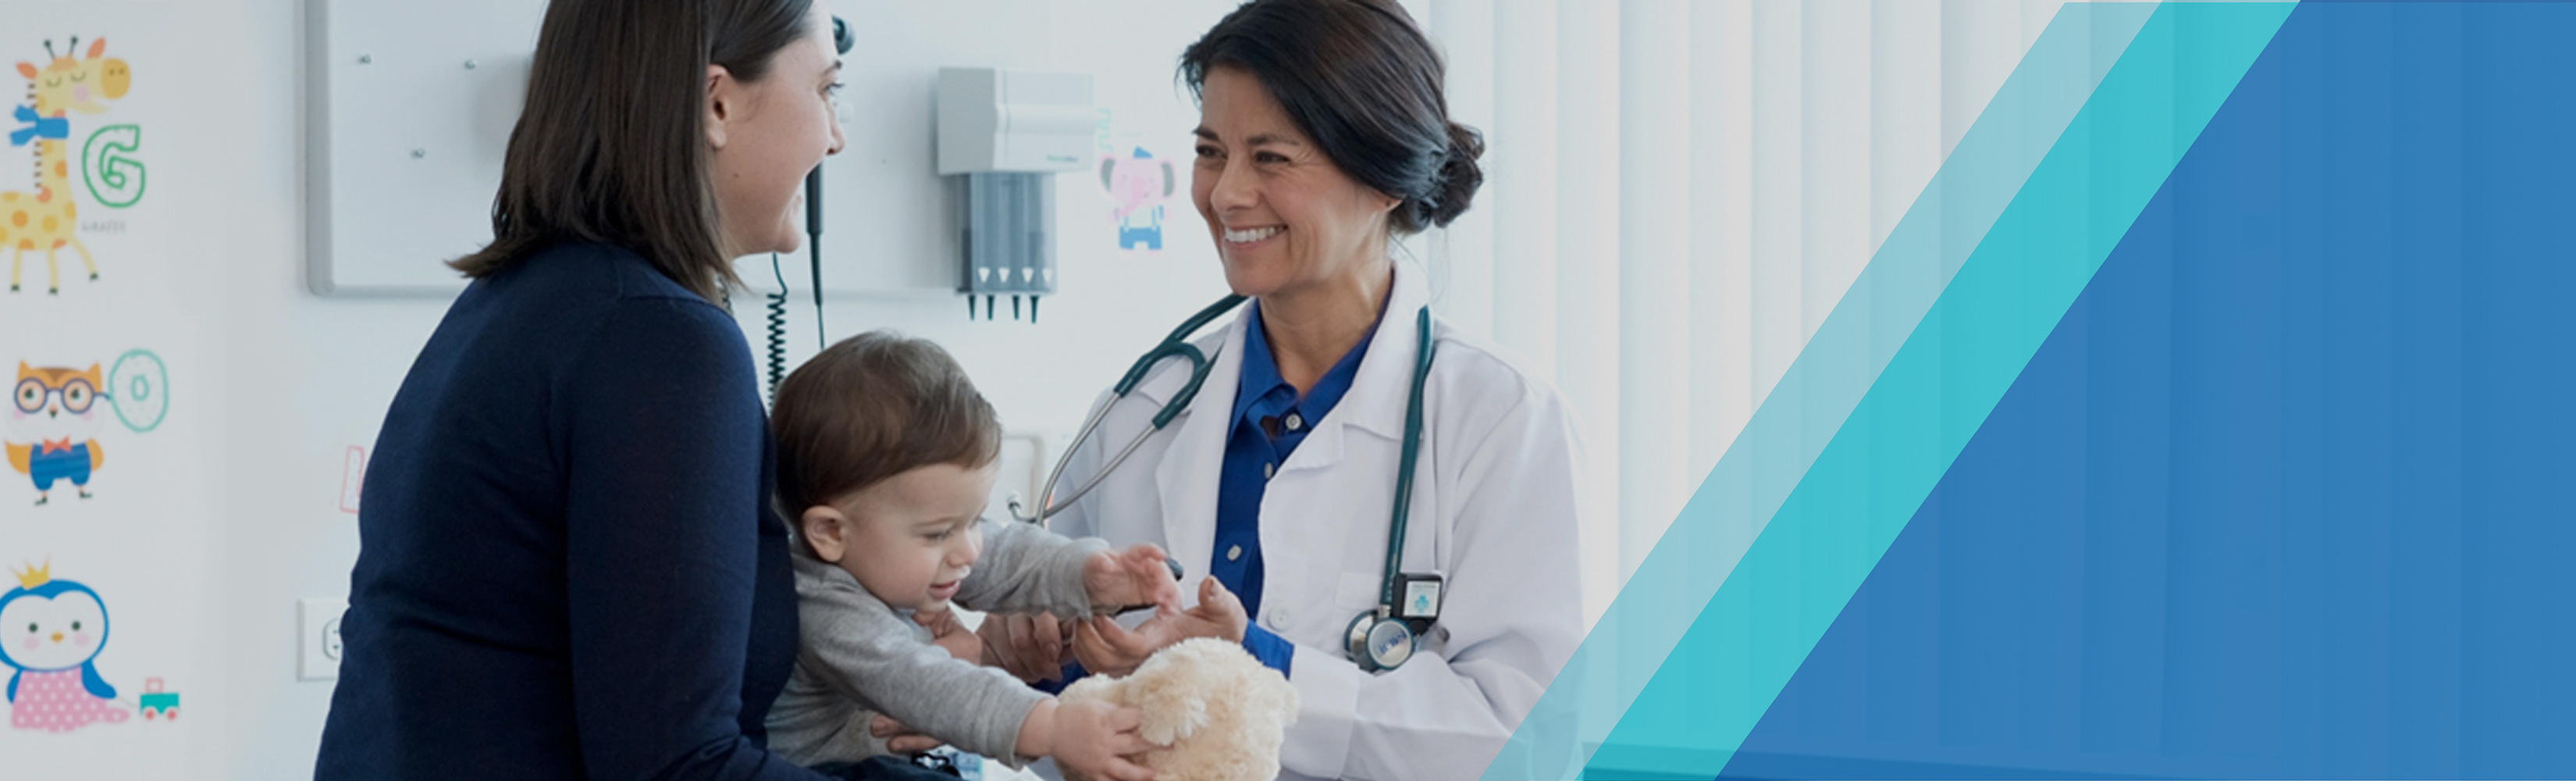 nurse with pediatric patient